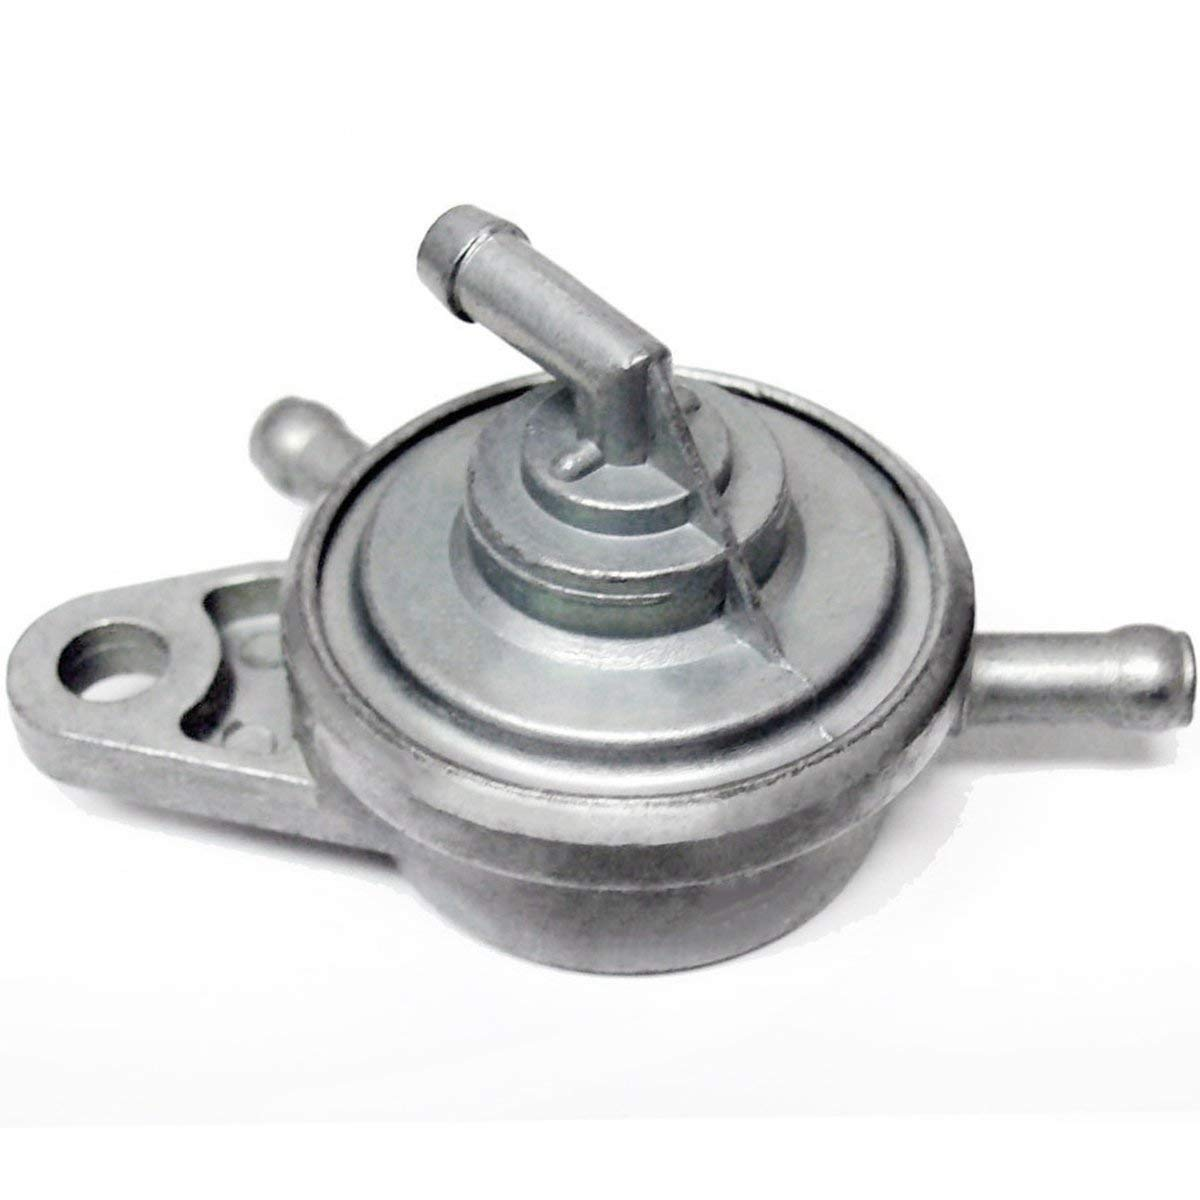 Amhousjeoy Vacuum Fuel Pump Petcock for ROKETA SUNL TAOTAO Chinese Moped ATV Scooter